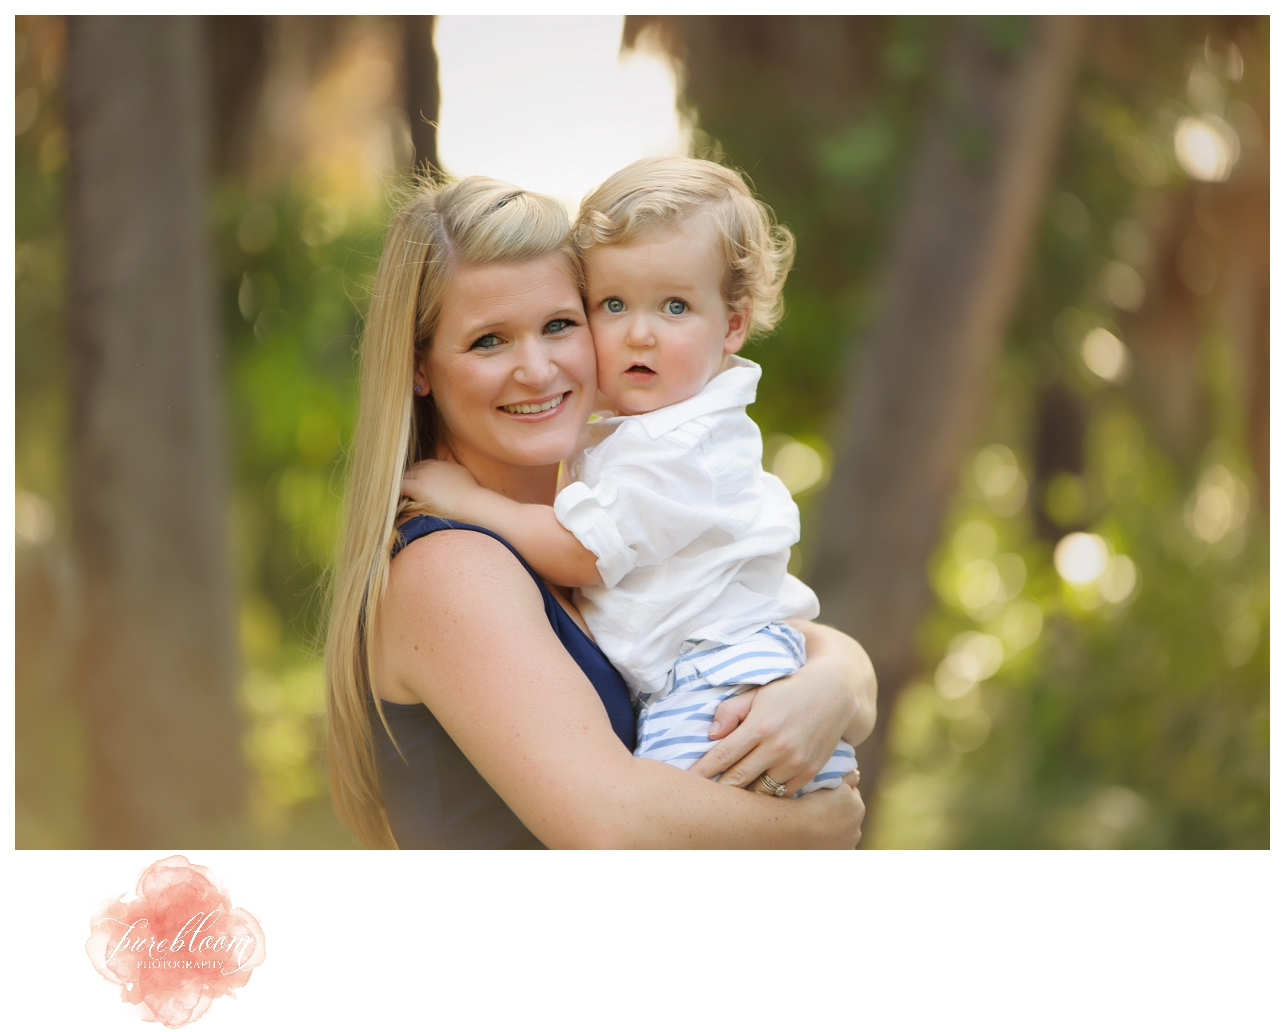 Ft Desoto Maternity Session | Tampa & Ste Pete Newborn Photographer | Pure Bloom Photography